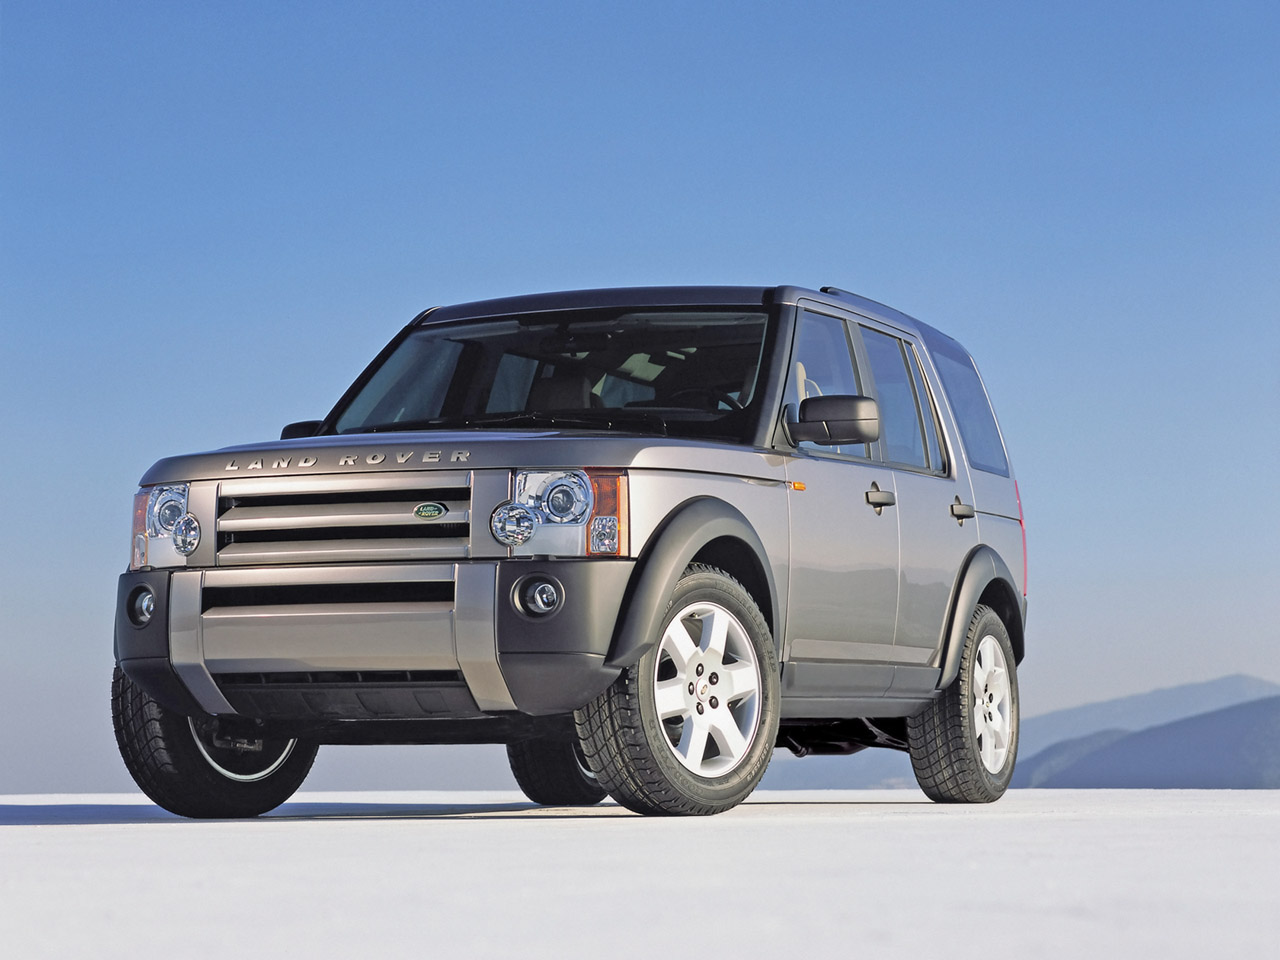 2005 Land Rover Discovery 3 #3